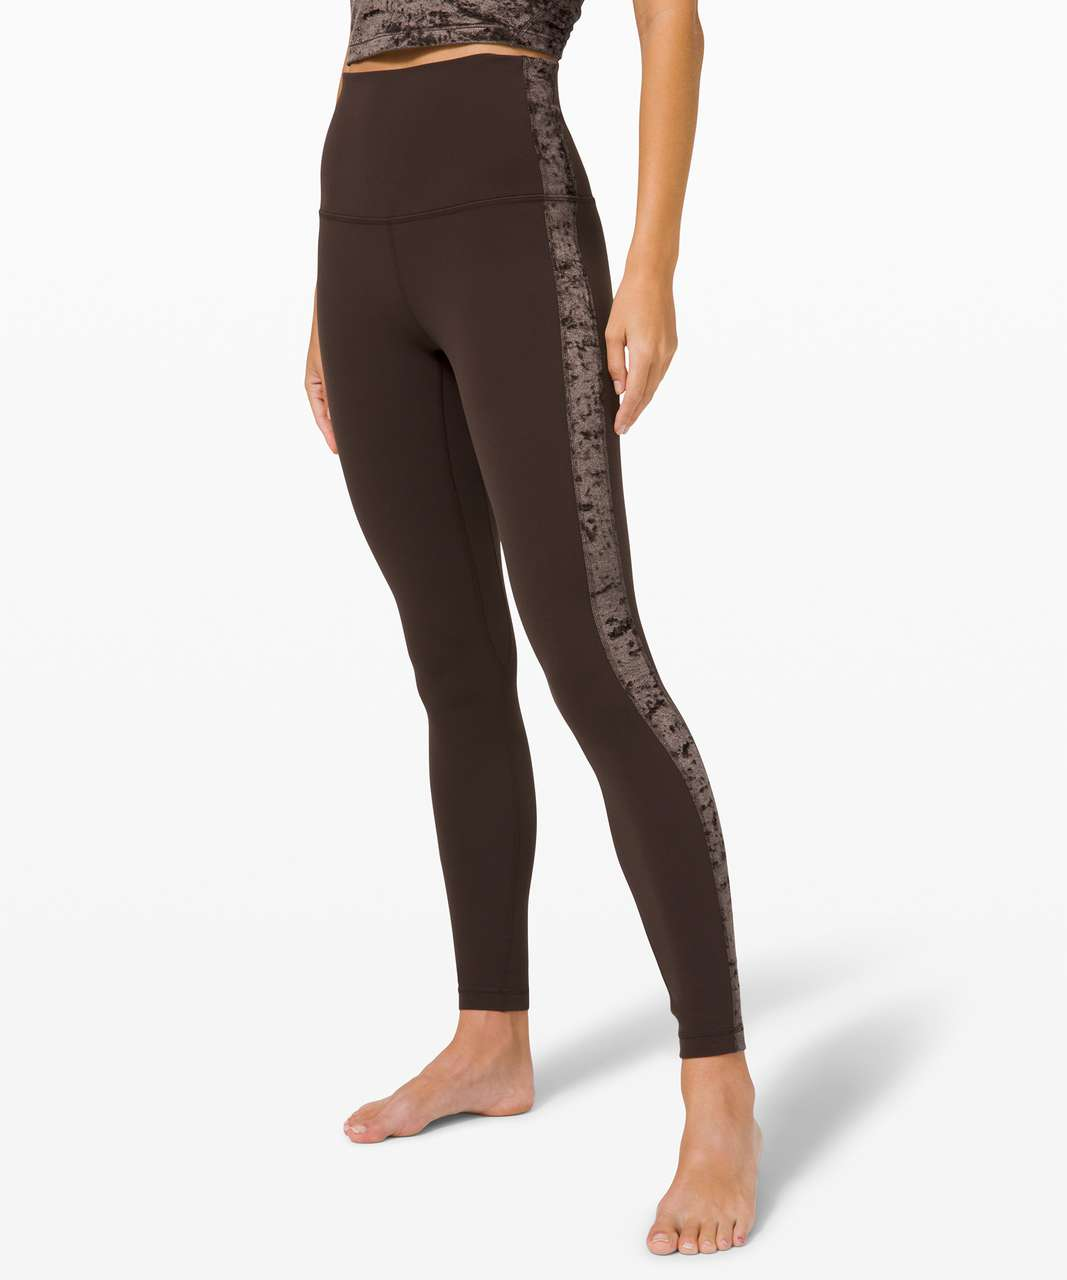 "Lululemon Align Super High-Rise Pant 28"" *Crushed Velvet - French Press"